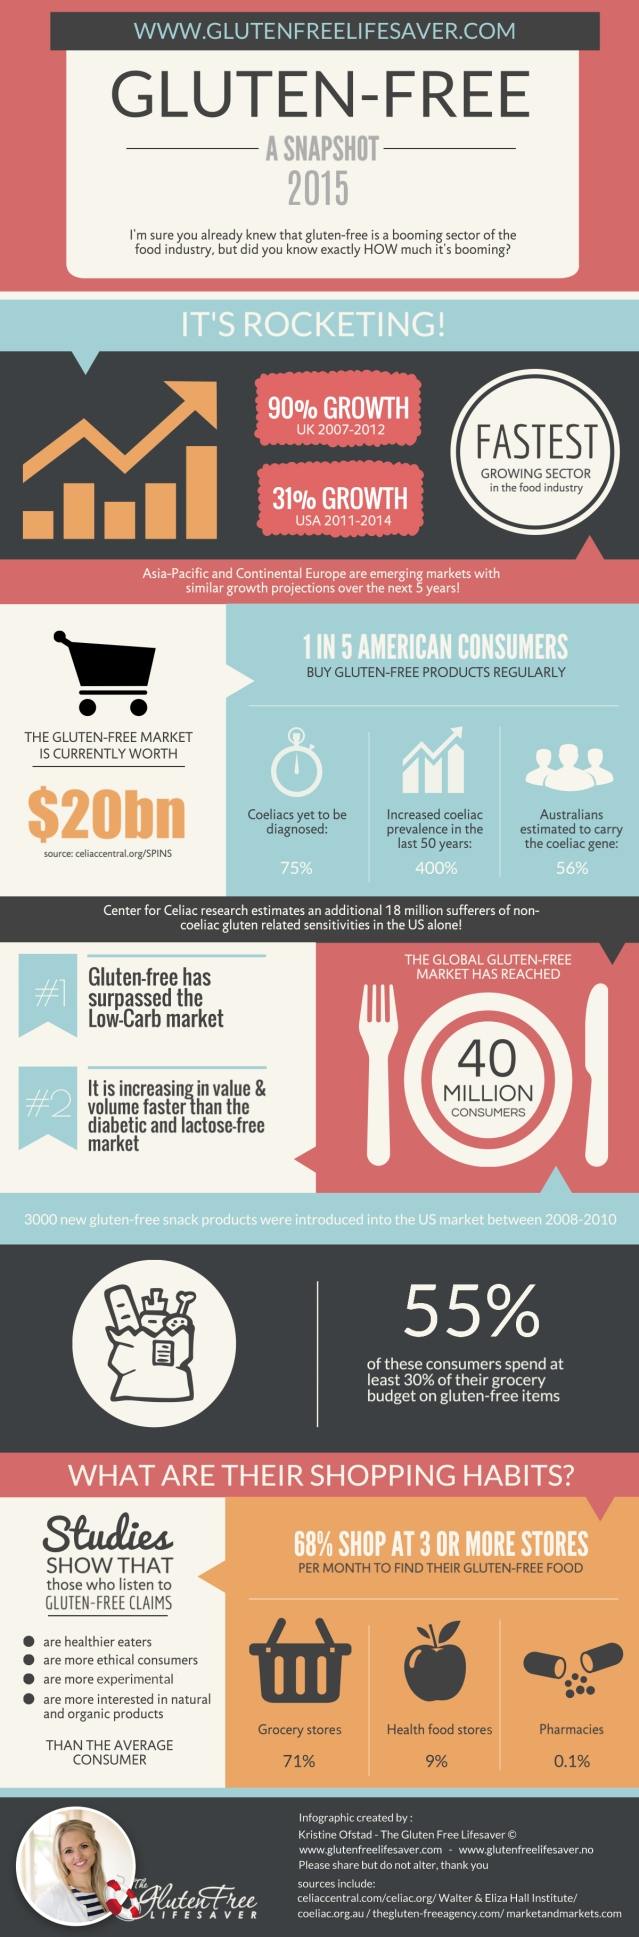 A Snapshot of The Gluten-Free Market 2015 - Infographic by The Gluten Free Lifesaver  #glutenfree #celiac #coeliac